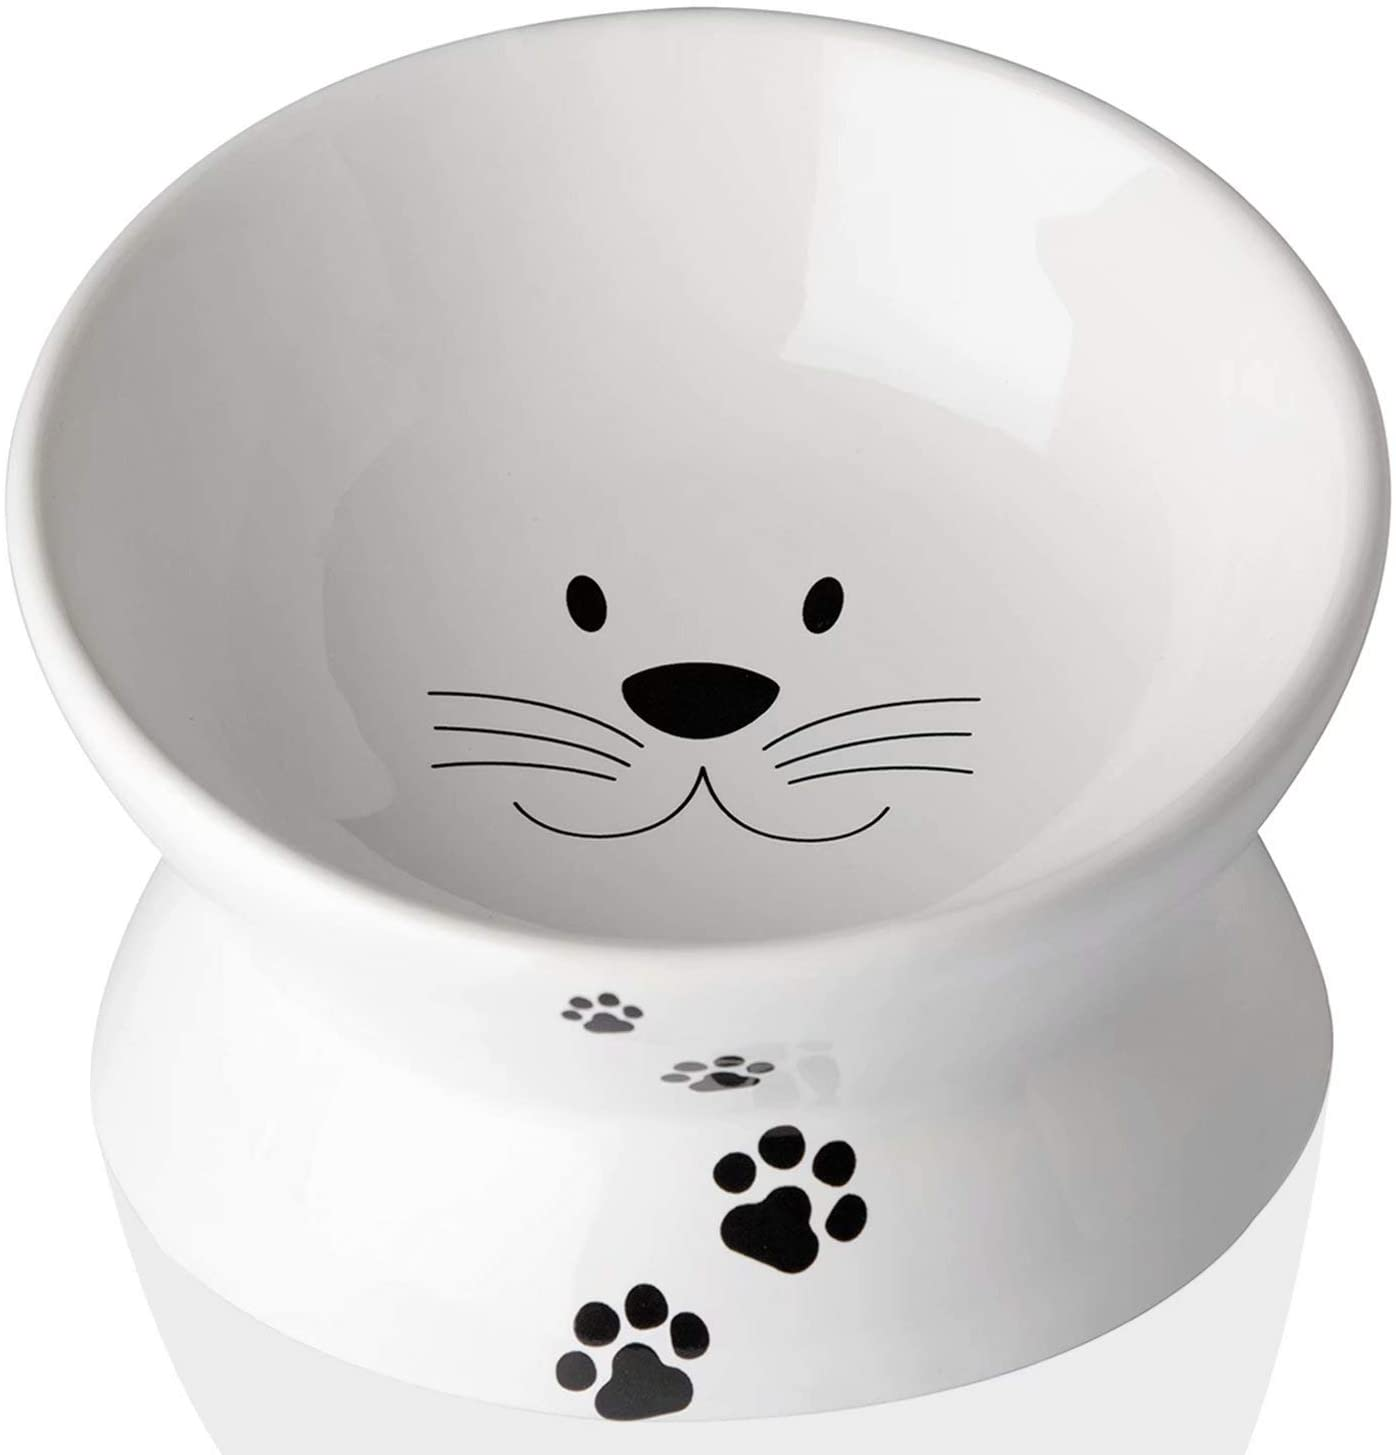 Cat Food Bowls, Elevated Cat Bowls for Cats and Small Dogs, Tilted Pet Feeder Bowl with Raised Stand Protect Cats Spine, Ceramic Cat Water Bowl No-Spill, Stress Free Cat Dish Dishwasher Safe